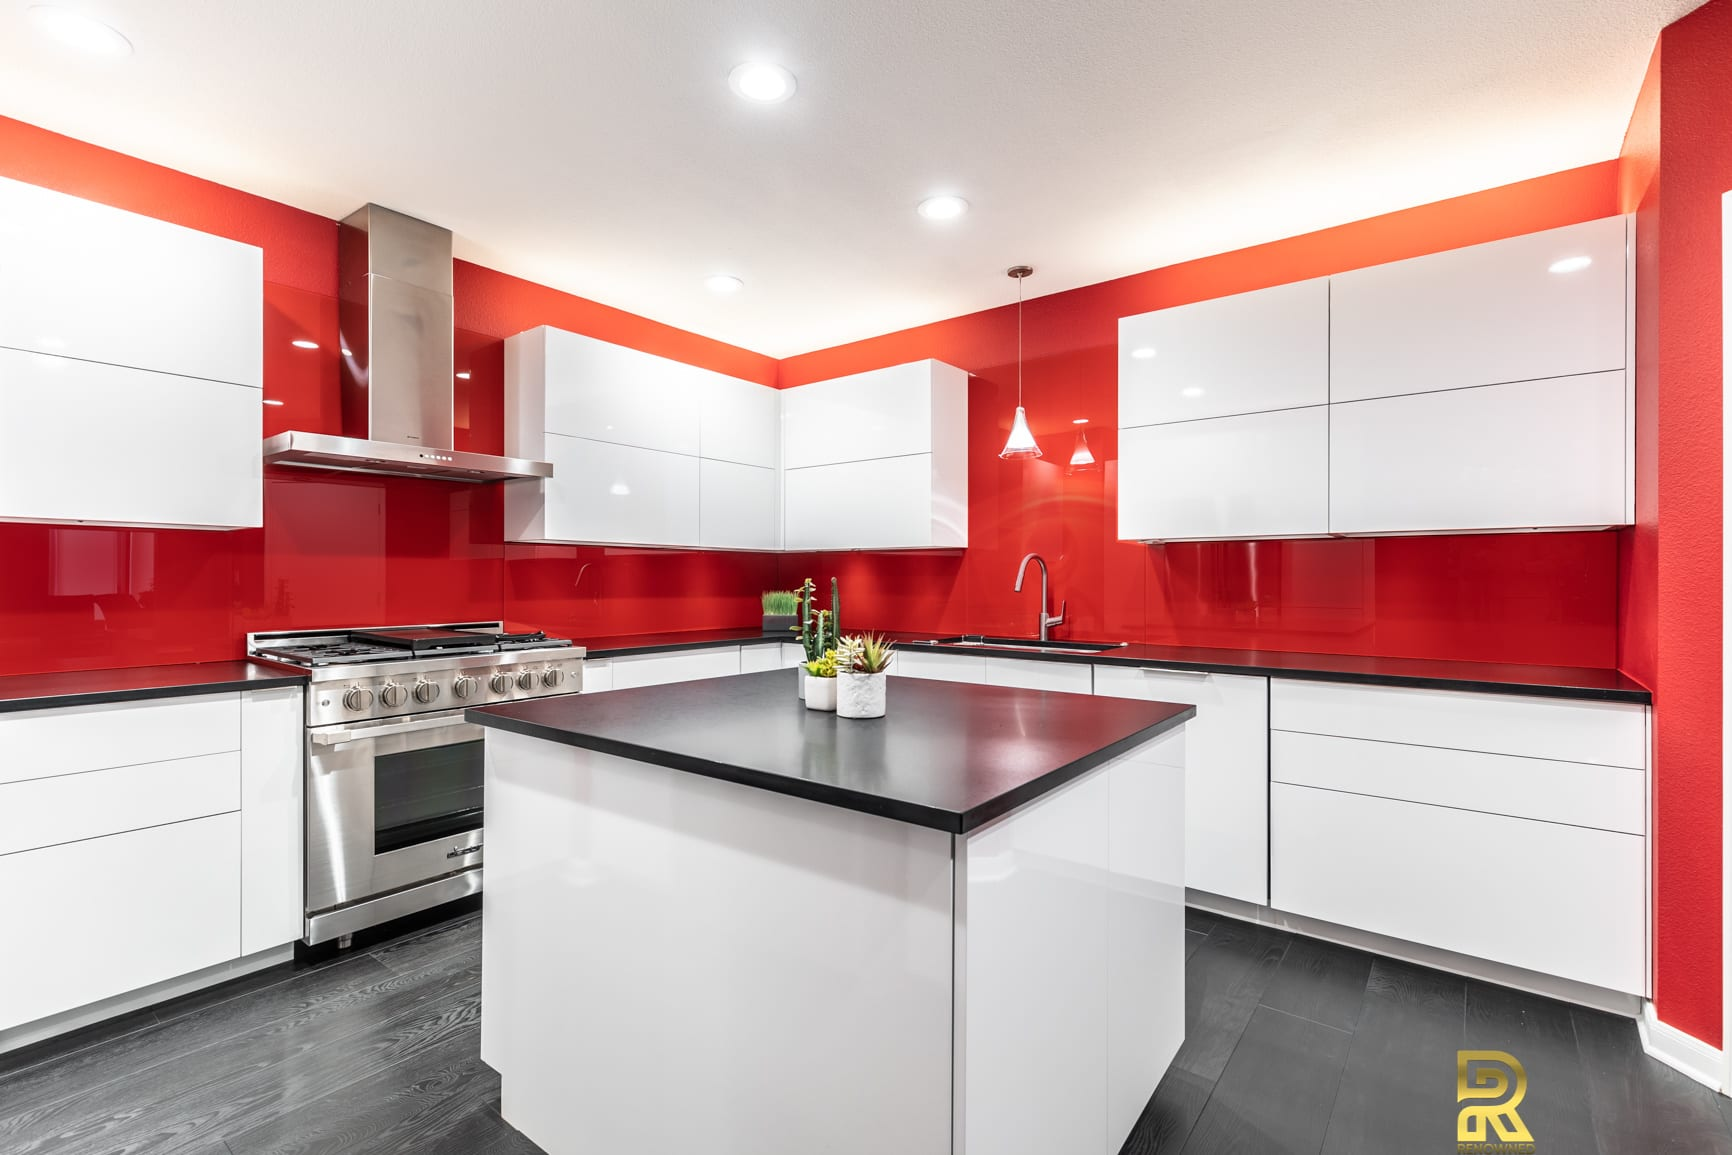 Red Hot Dallas High Rise Condo Kitchen with StyleCraft Custom After Remodeling by Renowned Renovation